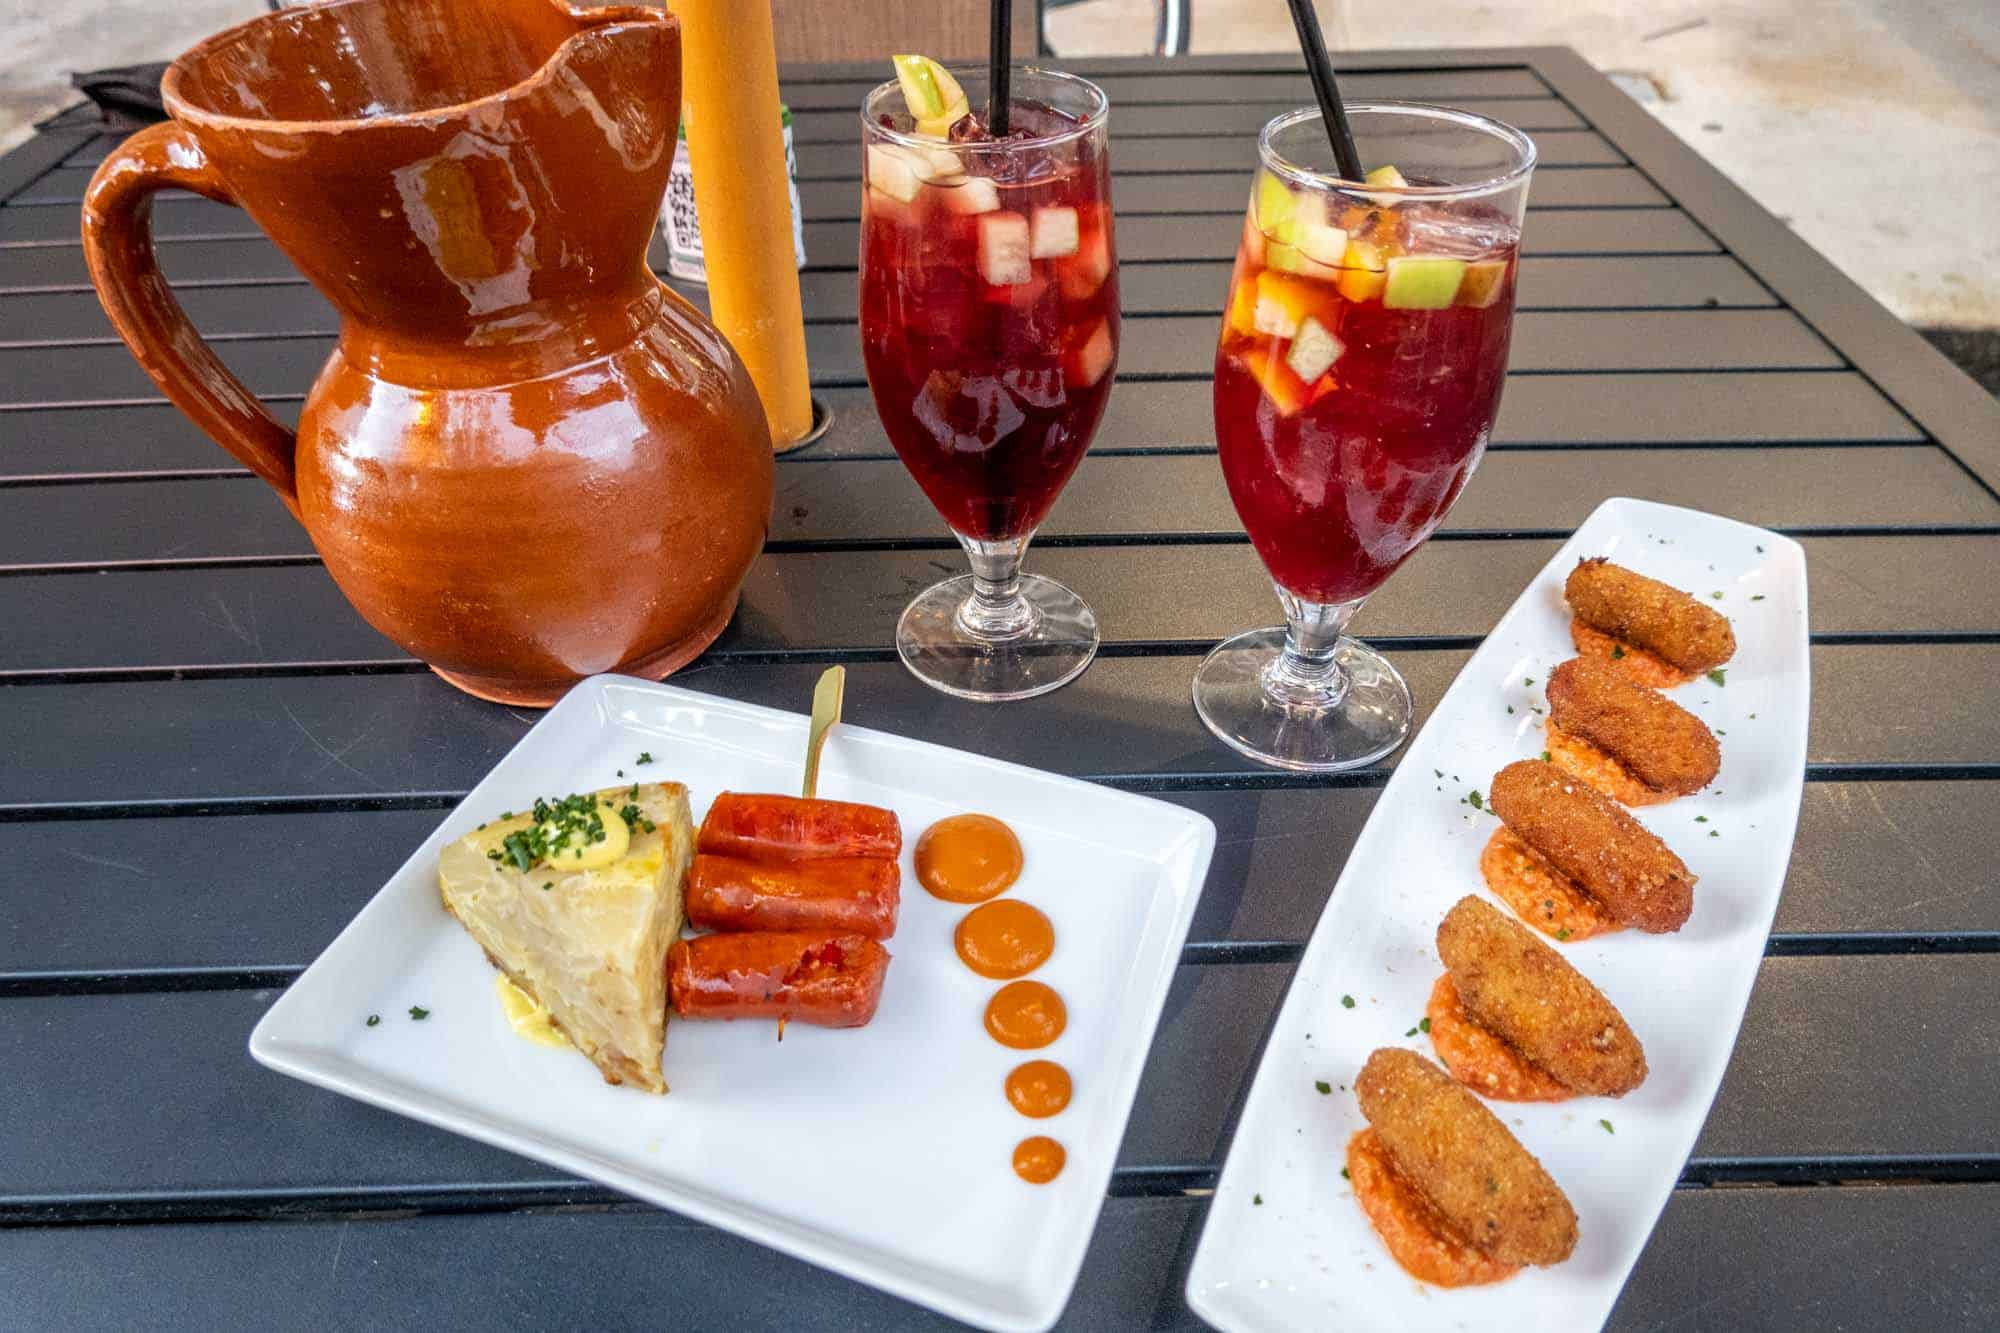 Spanish tortilla and Croquetas on plates with a drink